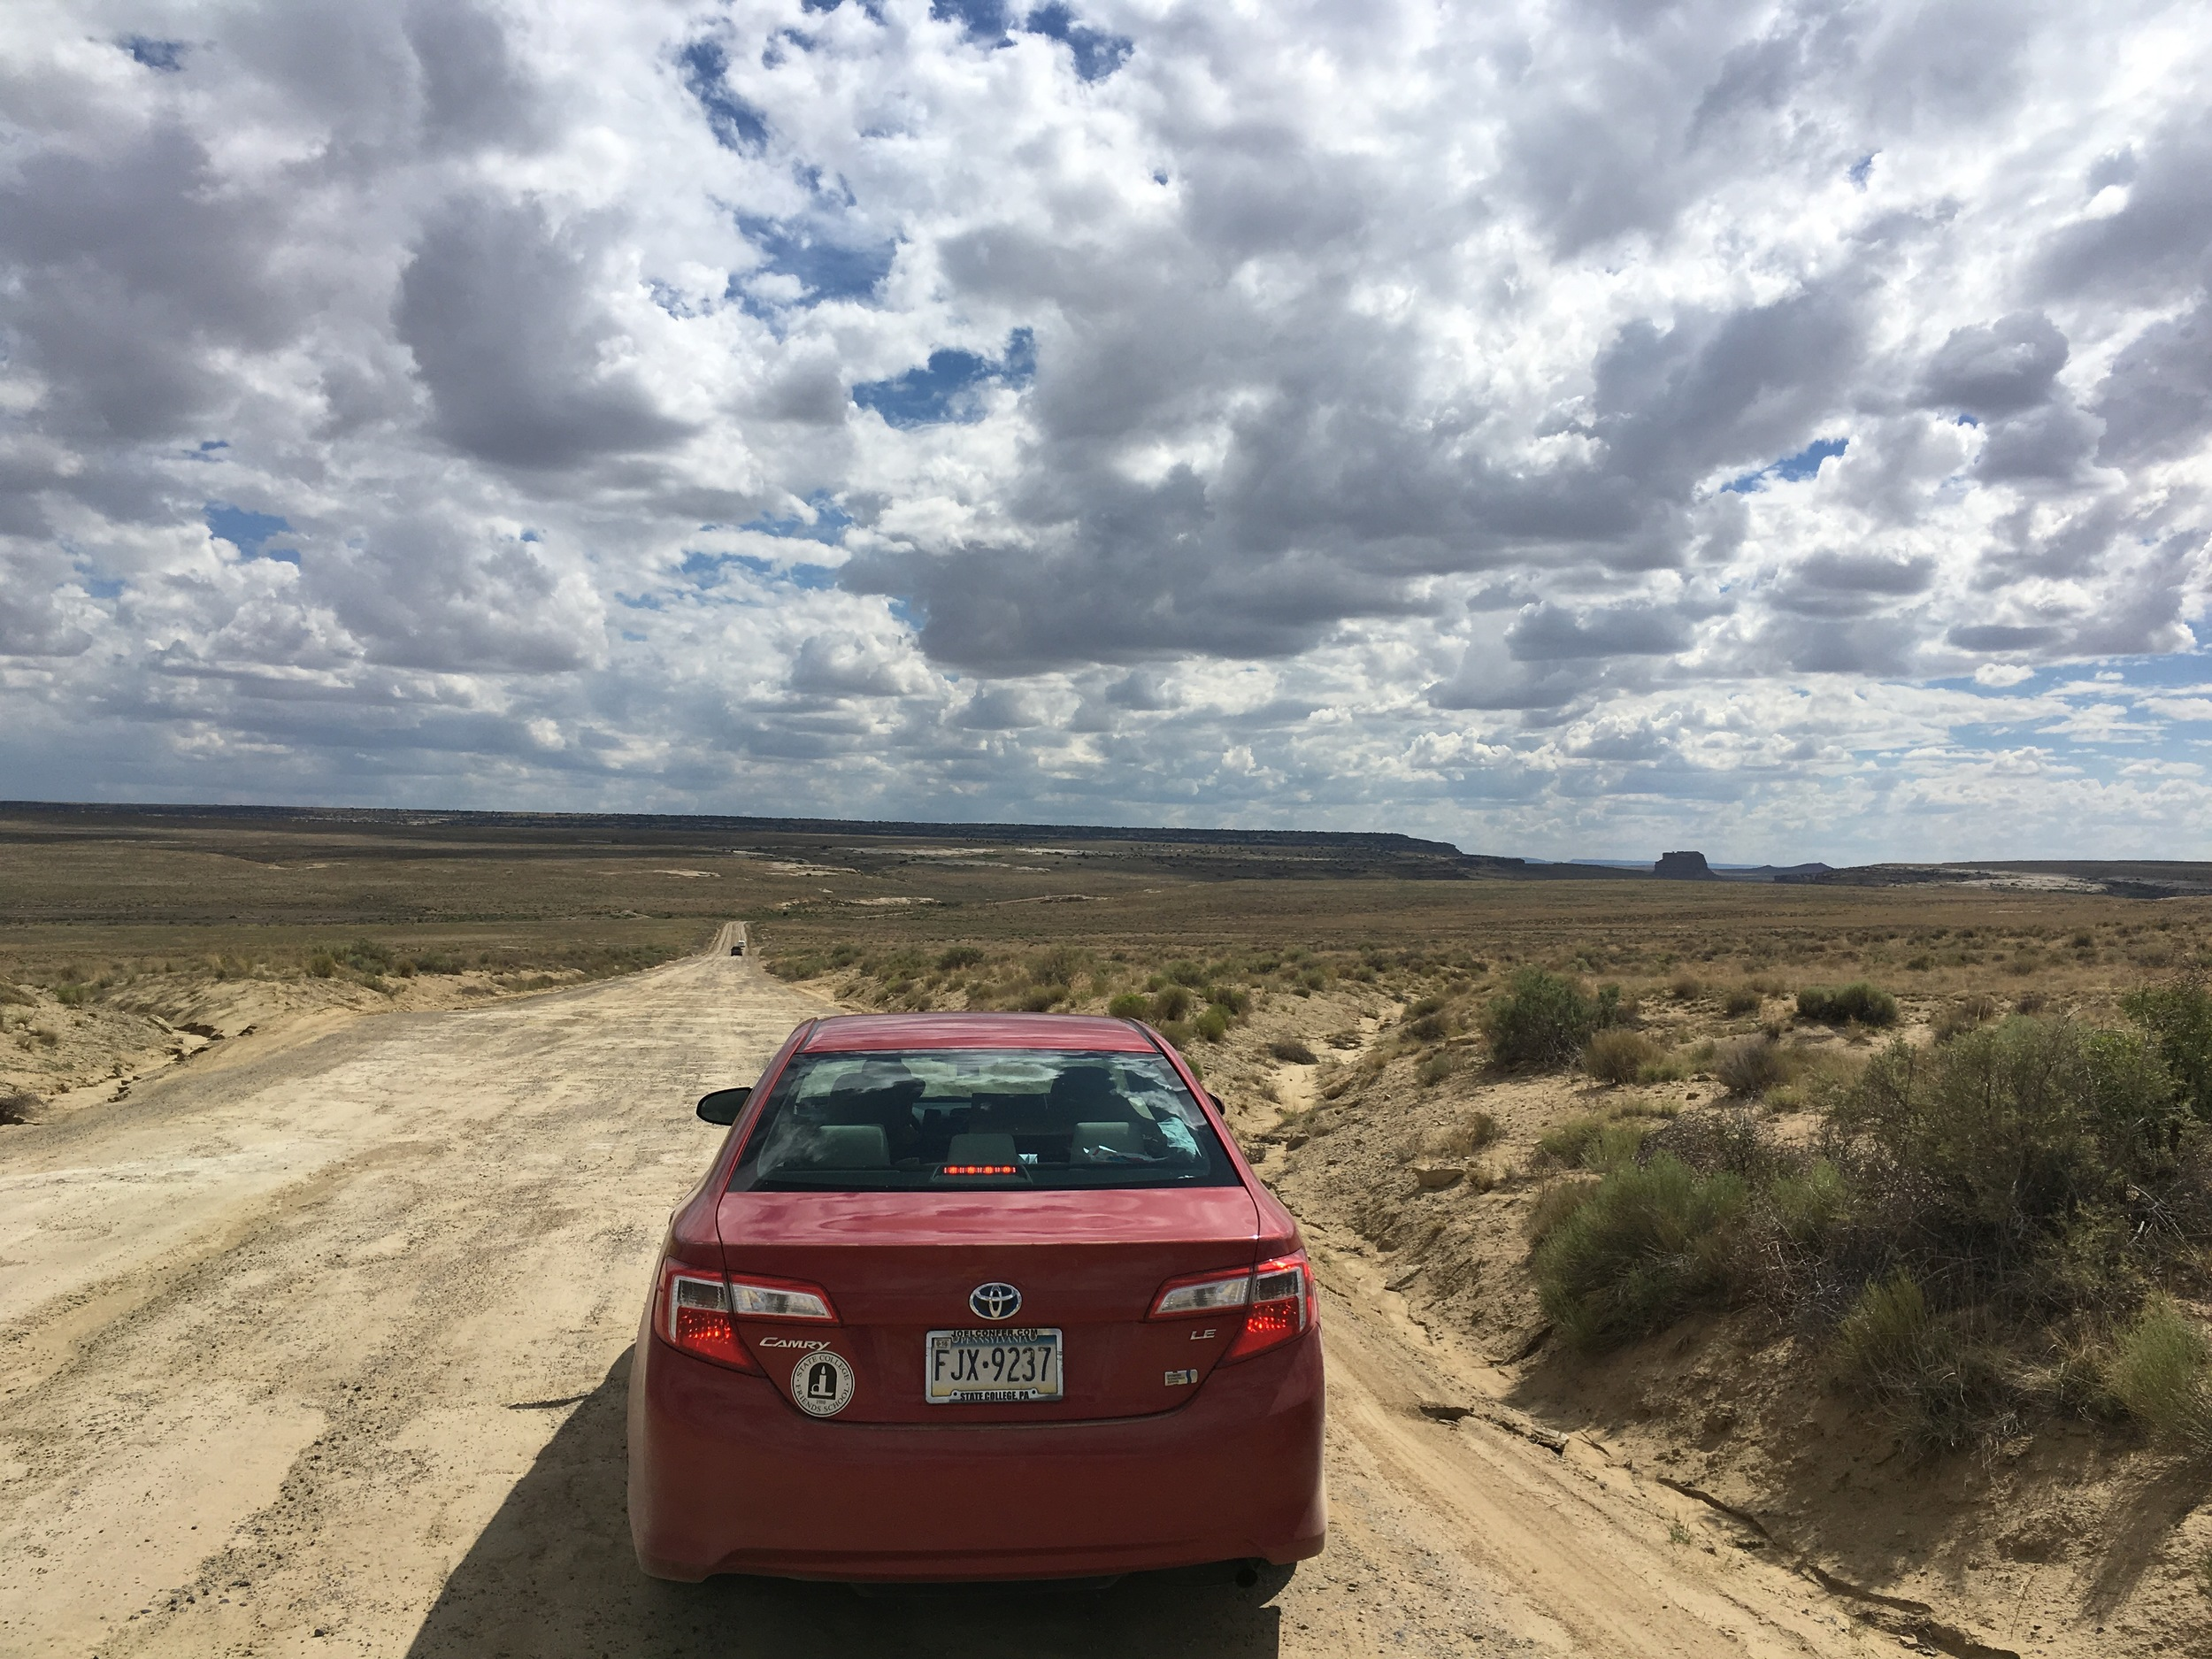 Driving in to Chaco Canyon